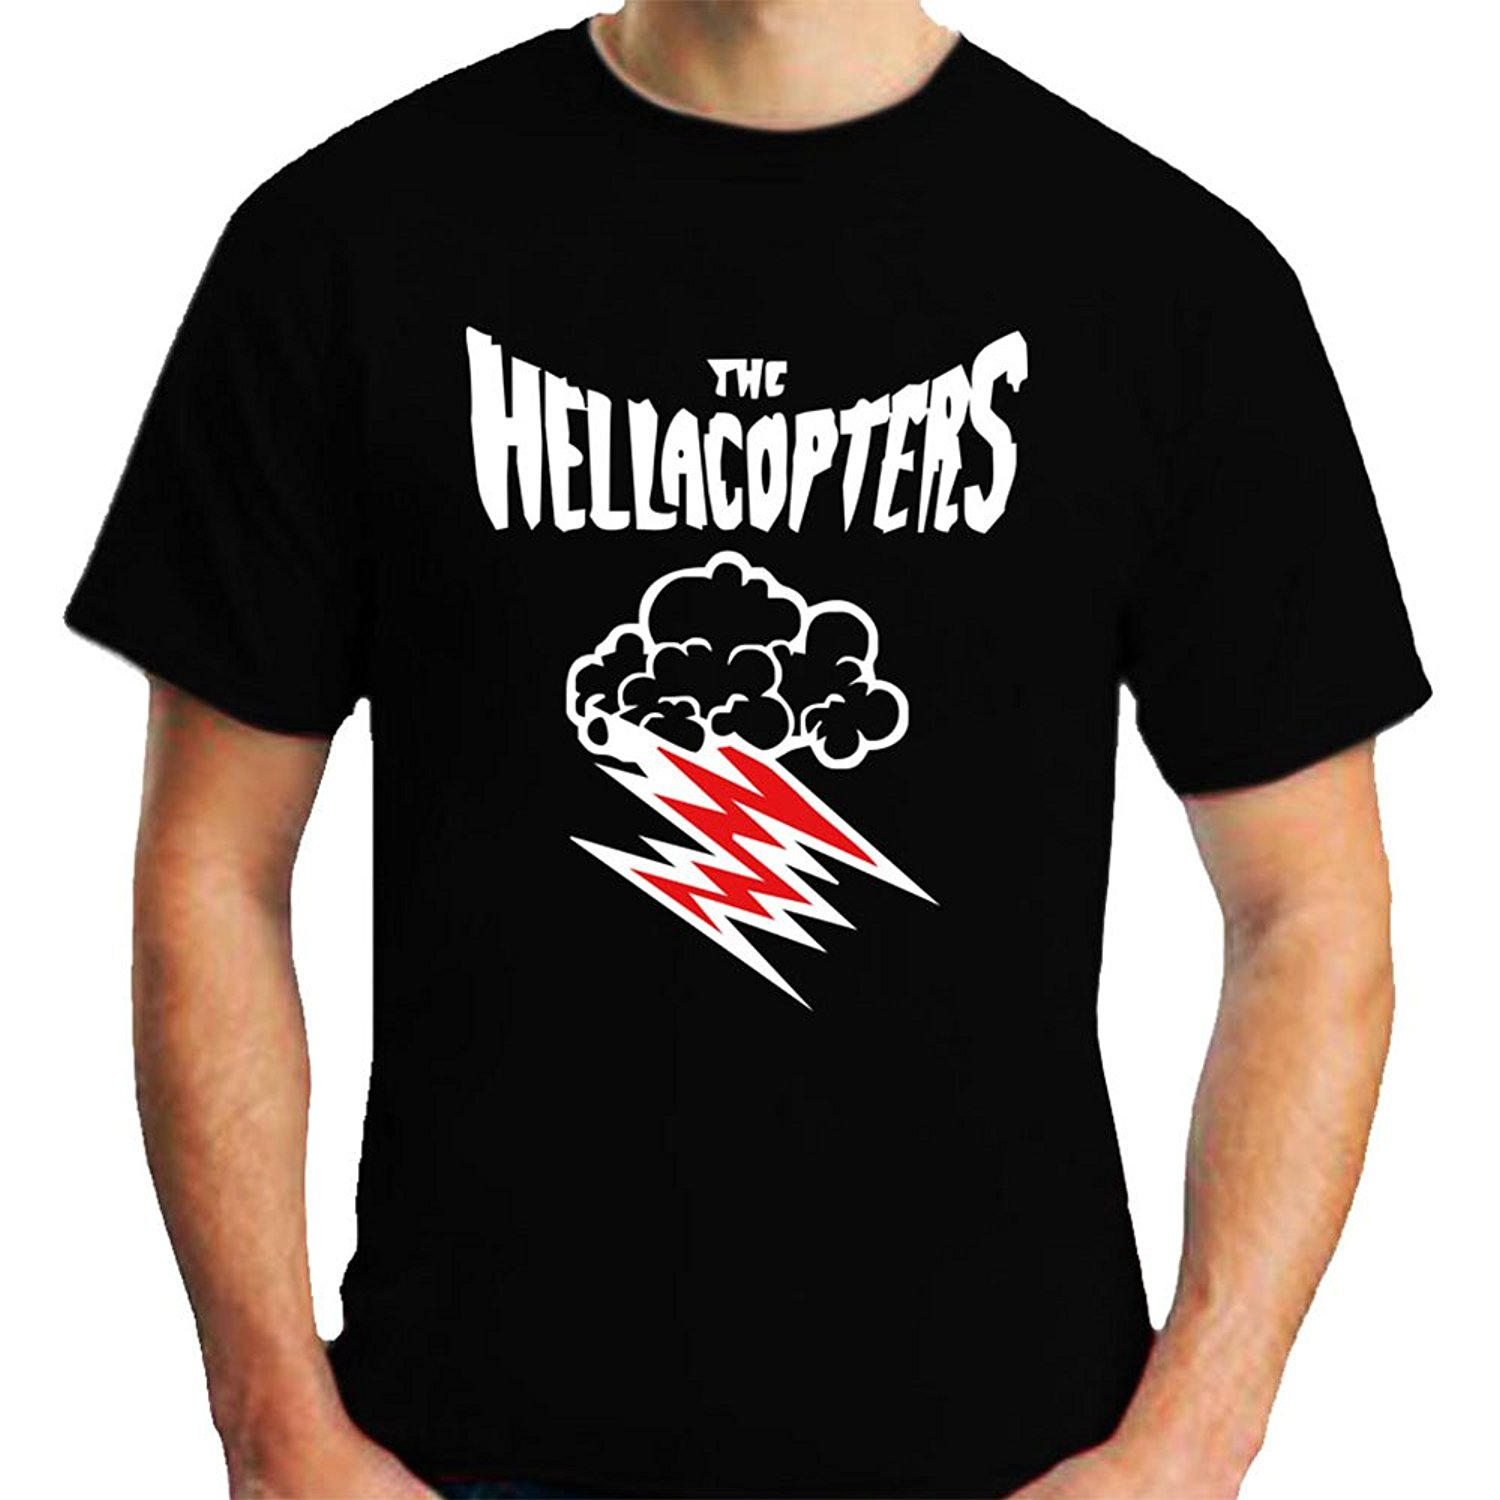 The Hellacopters Logo Rock Band Men/'s Black T-Shirt Size S to 3XL